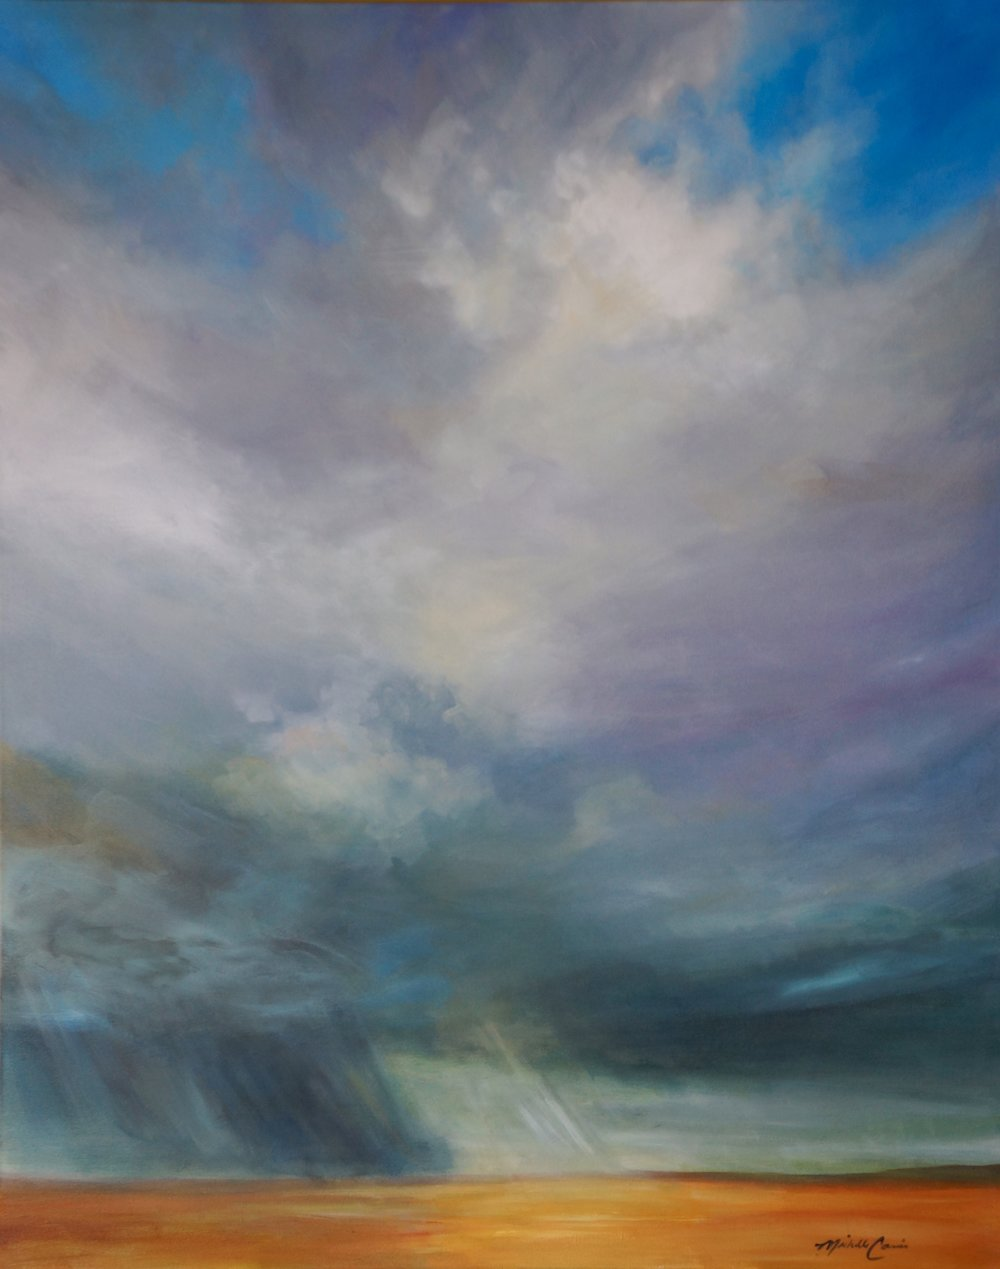 STORM OVER THE PLAIN 48 X 60 IN $8,500.  GICLEE PRINTS AVAILABLE IN VARIES SIZES ON PAPER/CANVAS